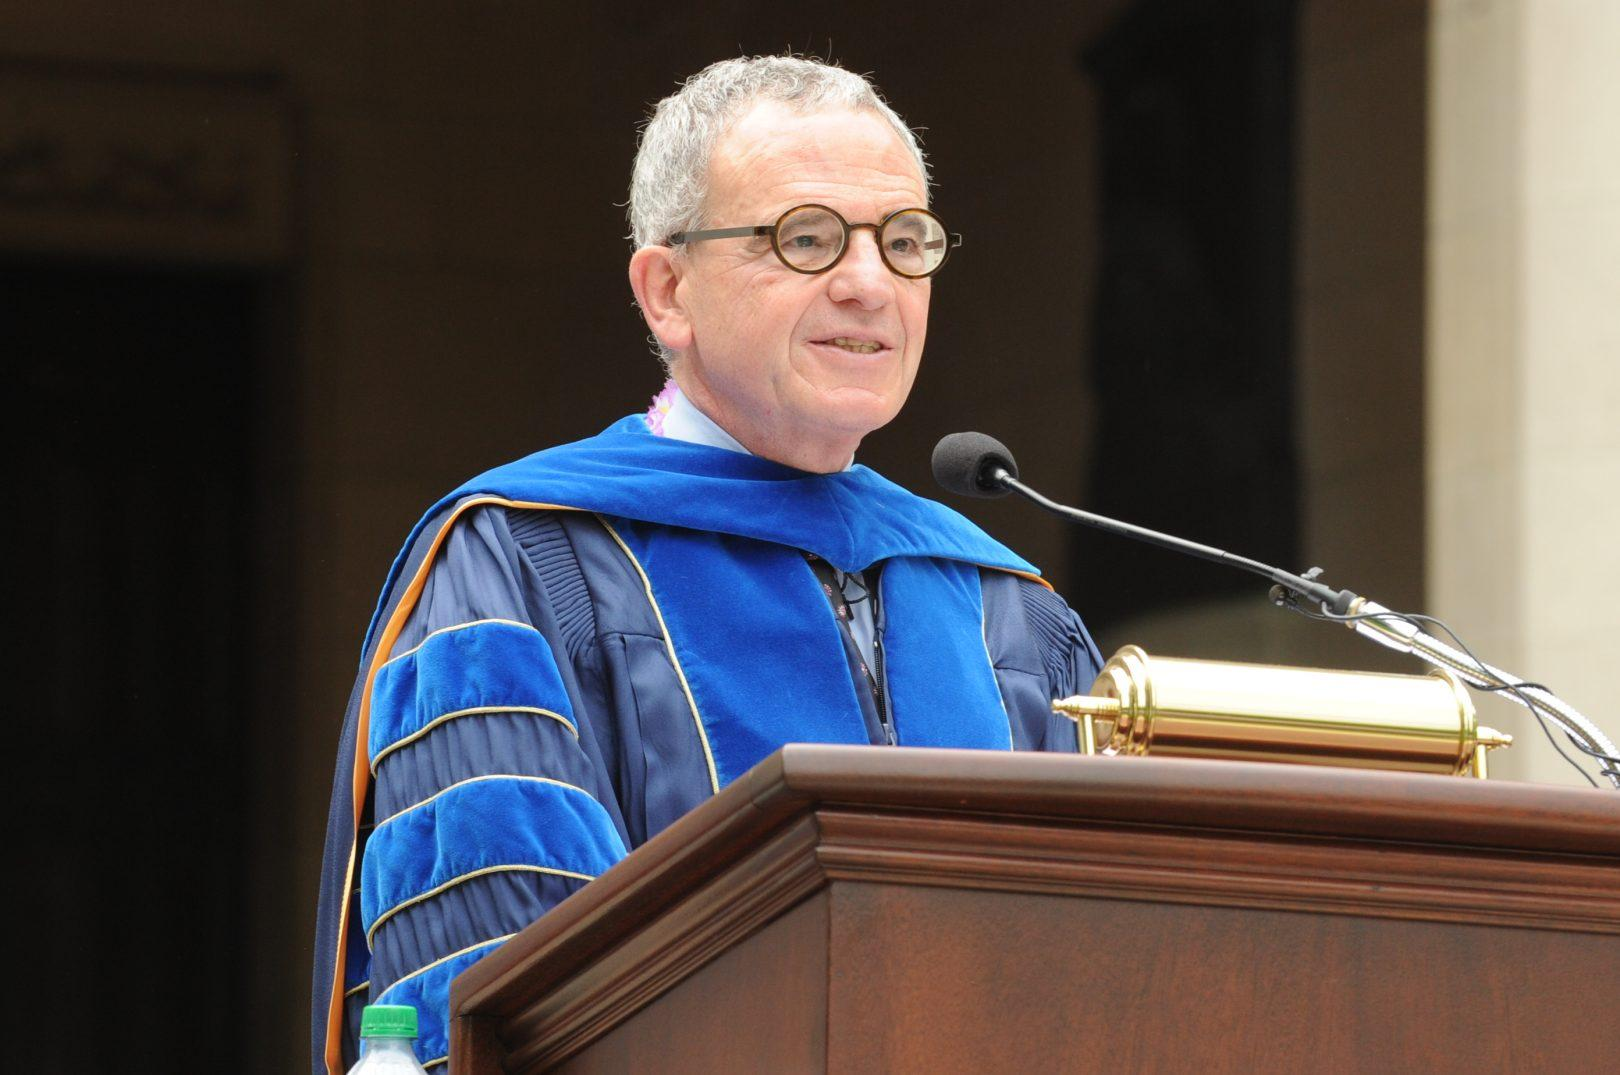 Stephen M. Freedman, University Provost, Dies at 68